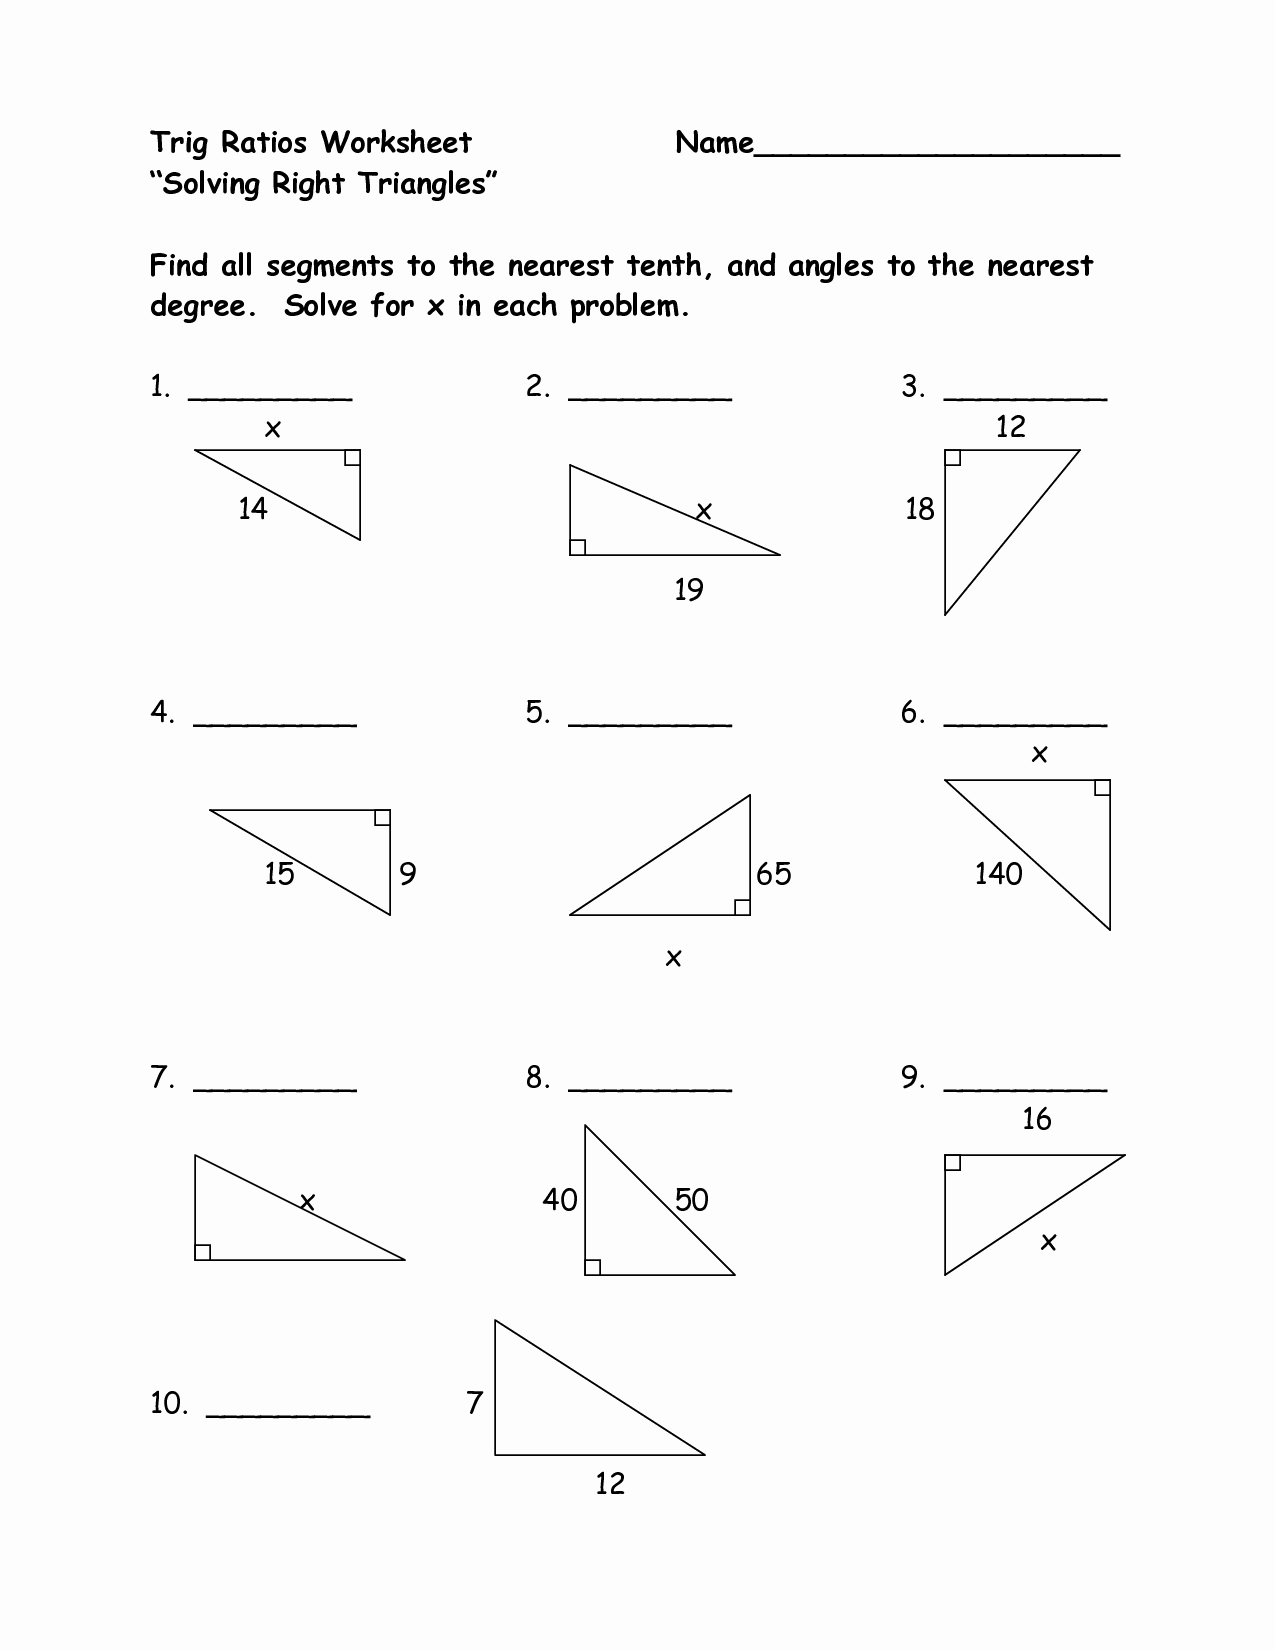 Right Triangle Trigonometry Worksheet Answers Best Of Trigonometry Ratios Worksheet Answers